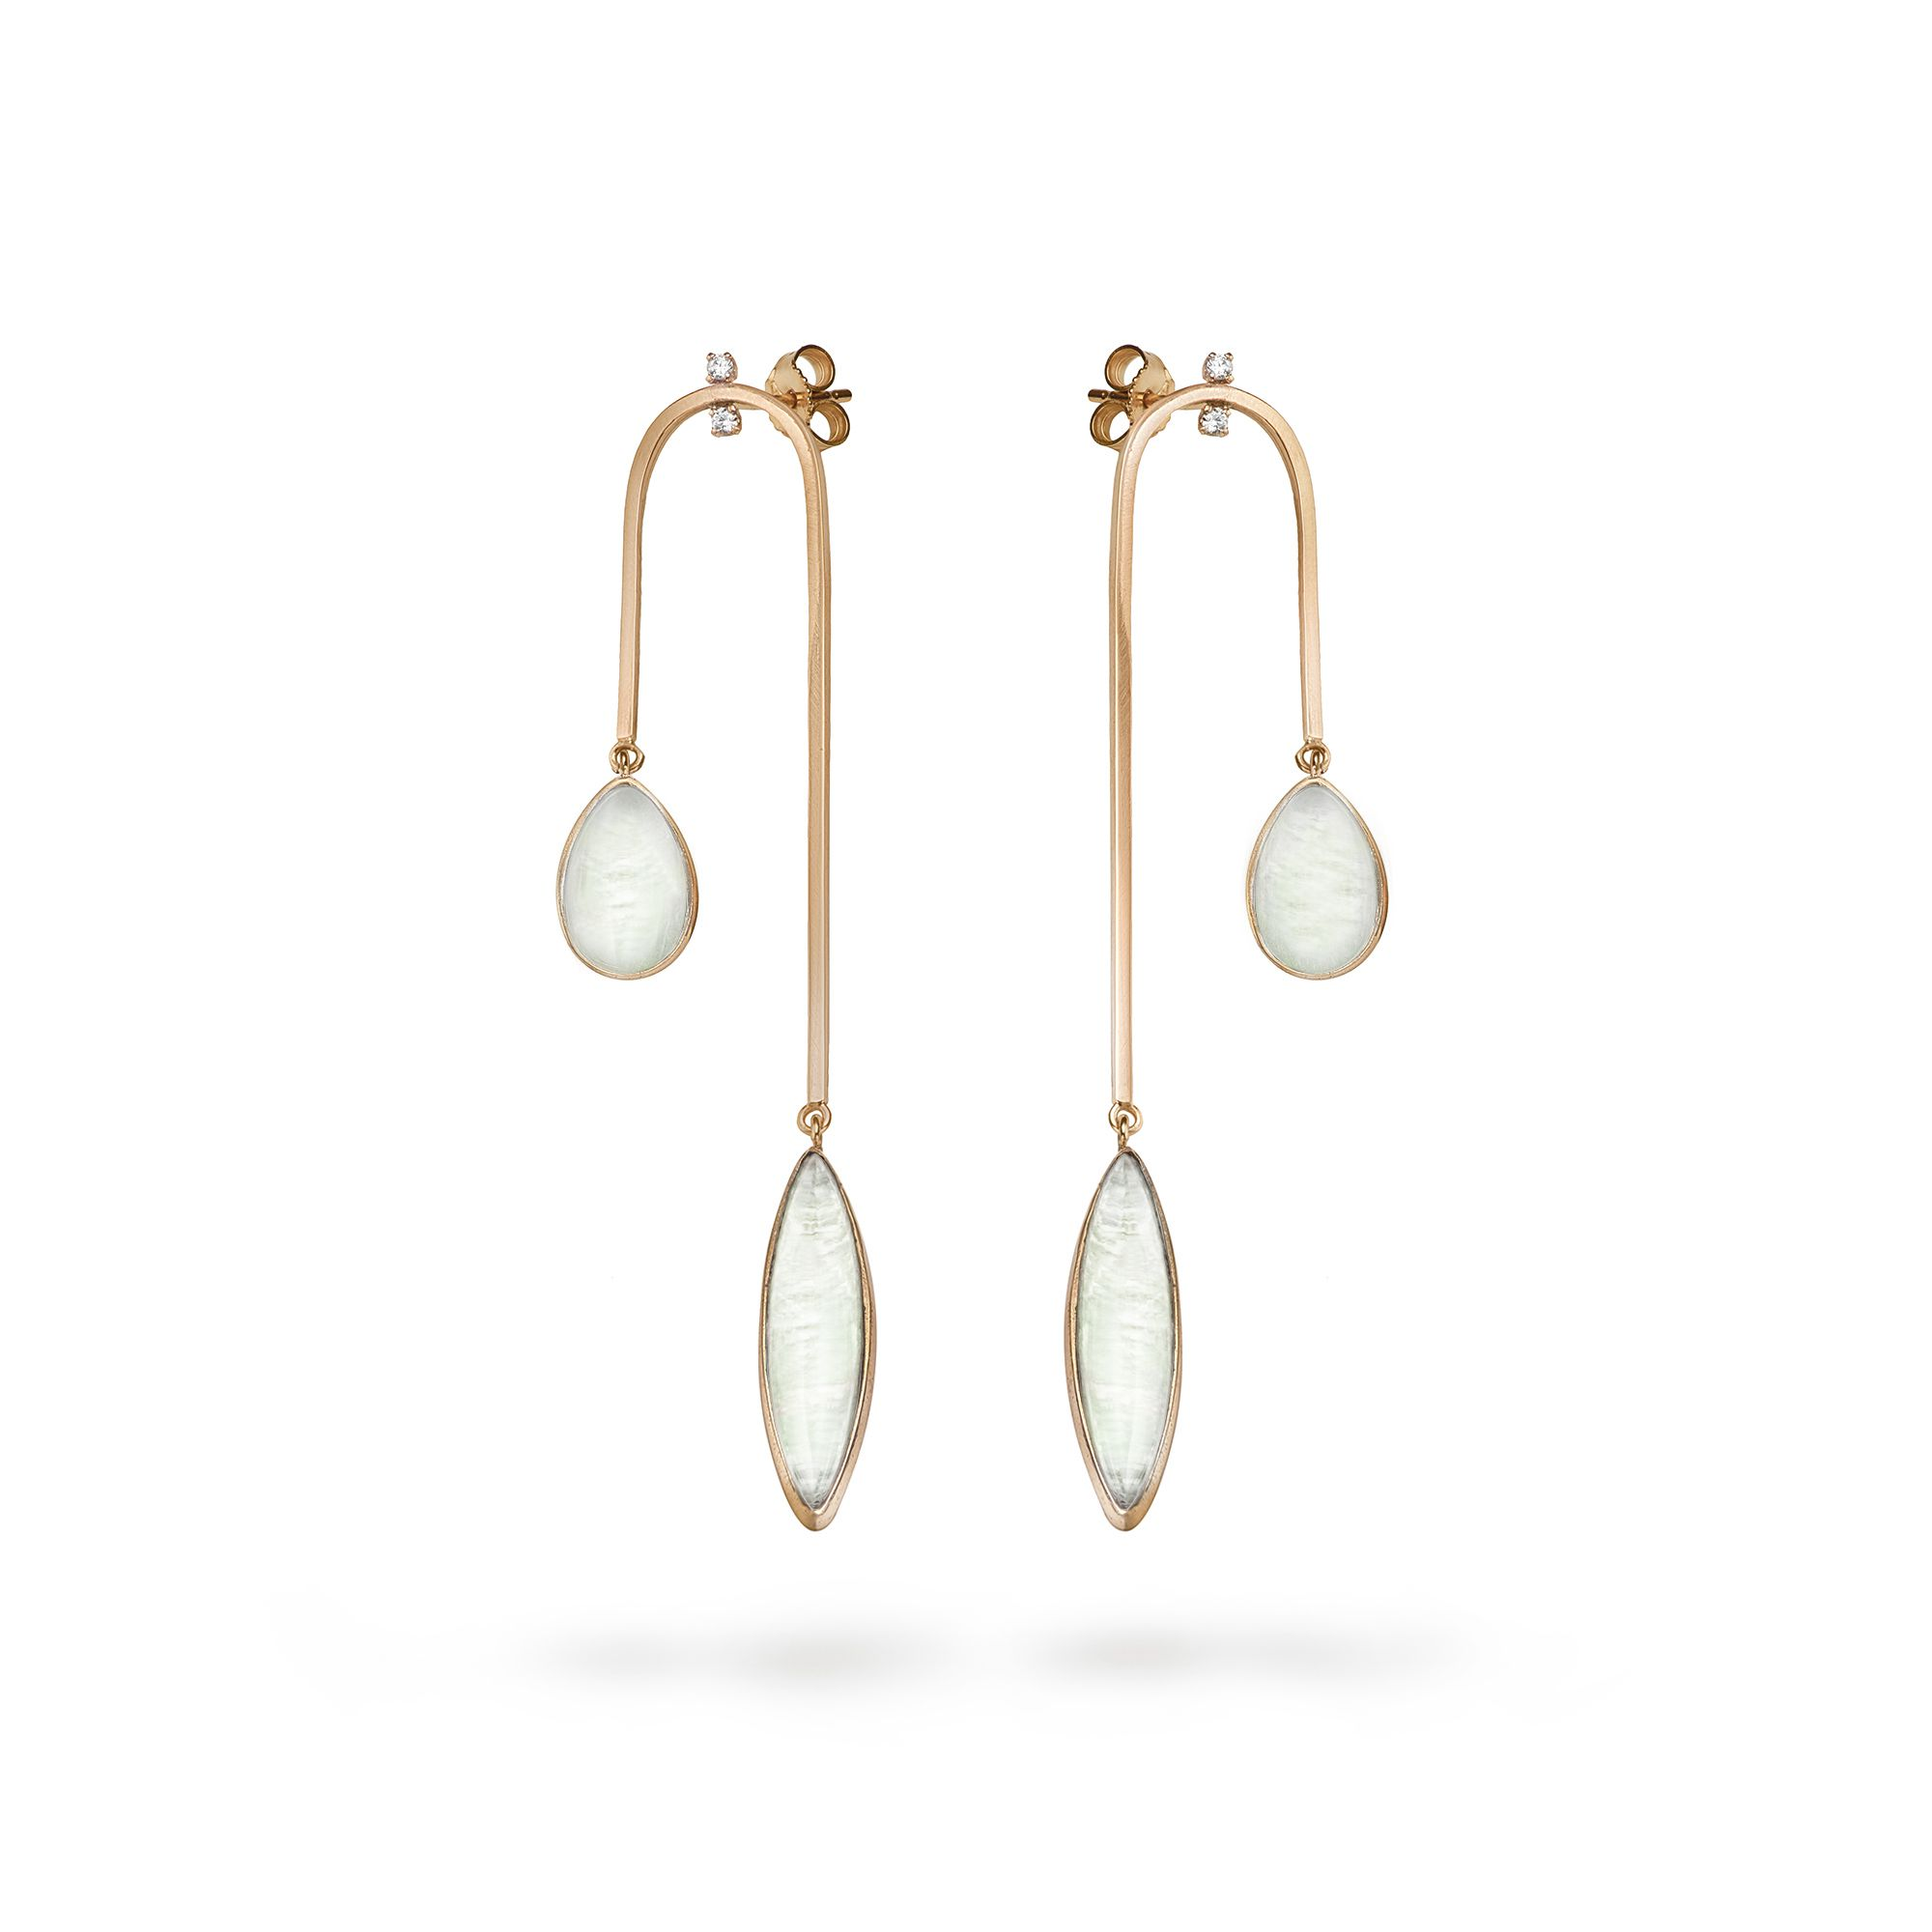 Curved 'Amo' earrings Rose gols earrings with diamonds and green agate